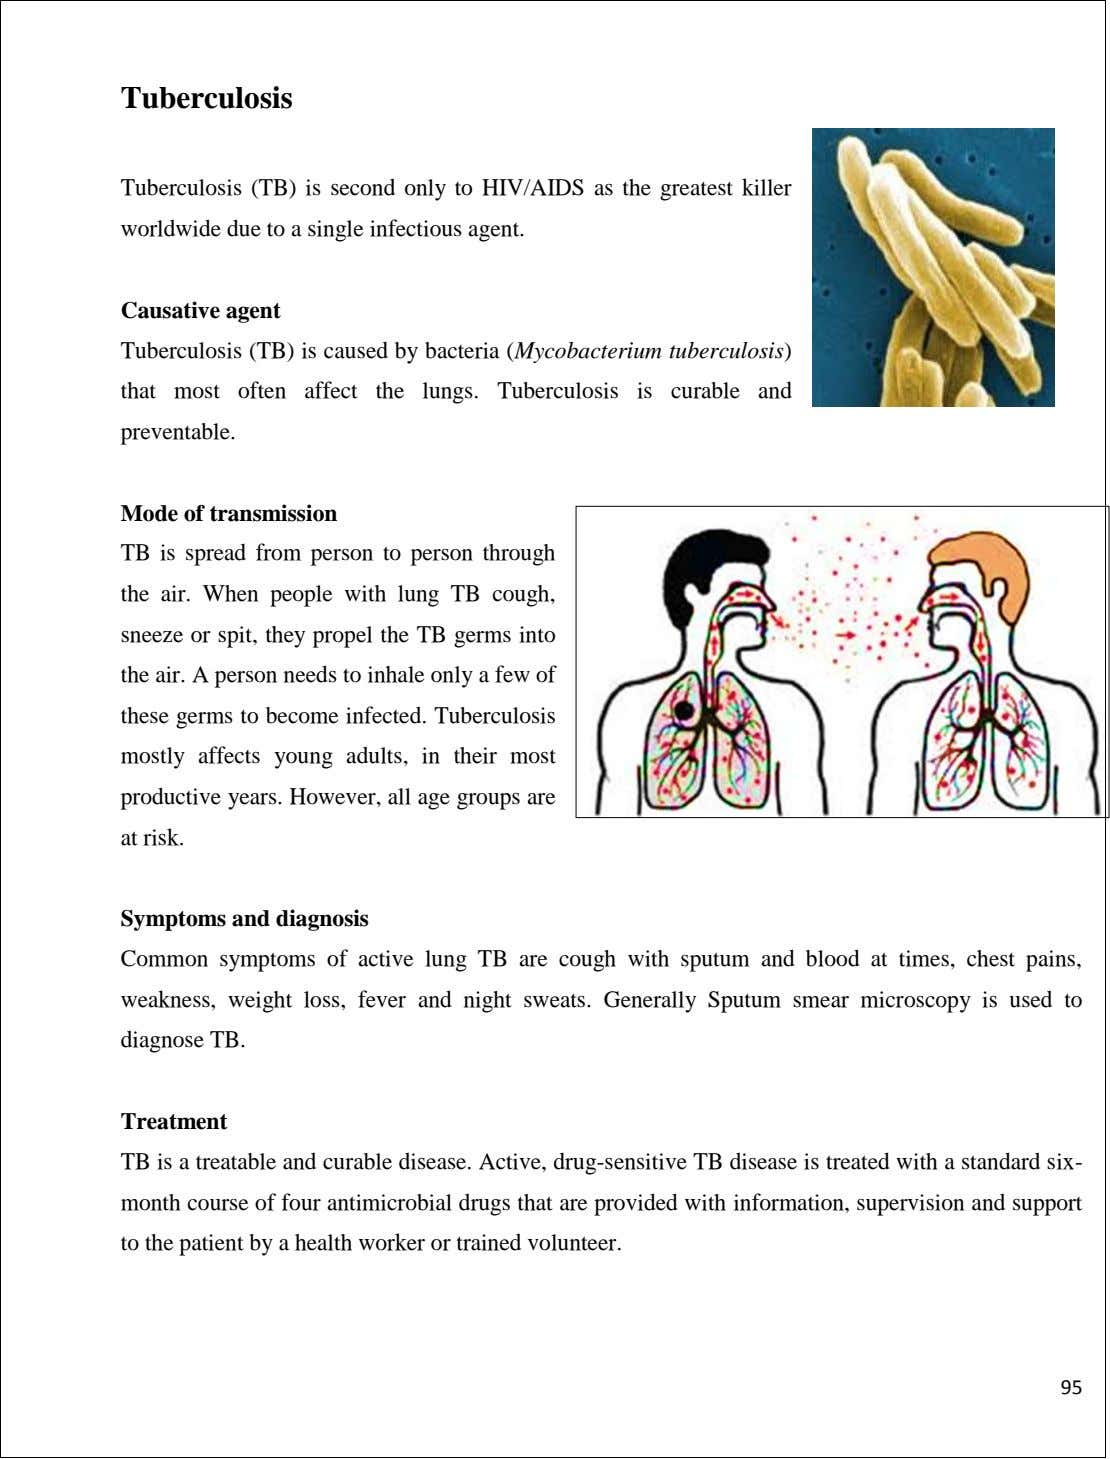 Tuberculosis Tuberculosis (TB) is second only to HIV/AIDS as the greatest killer worldwide due to